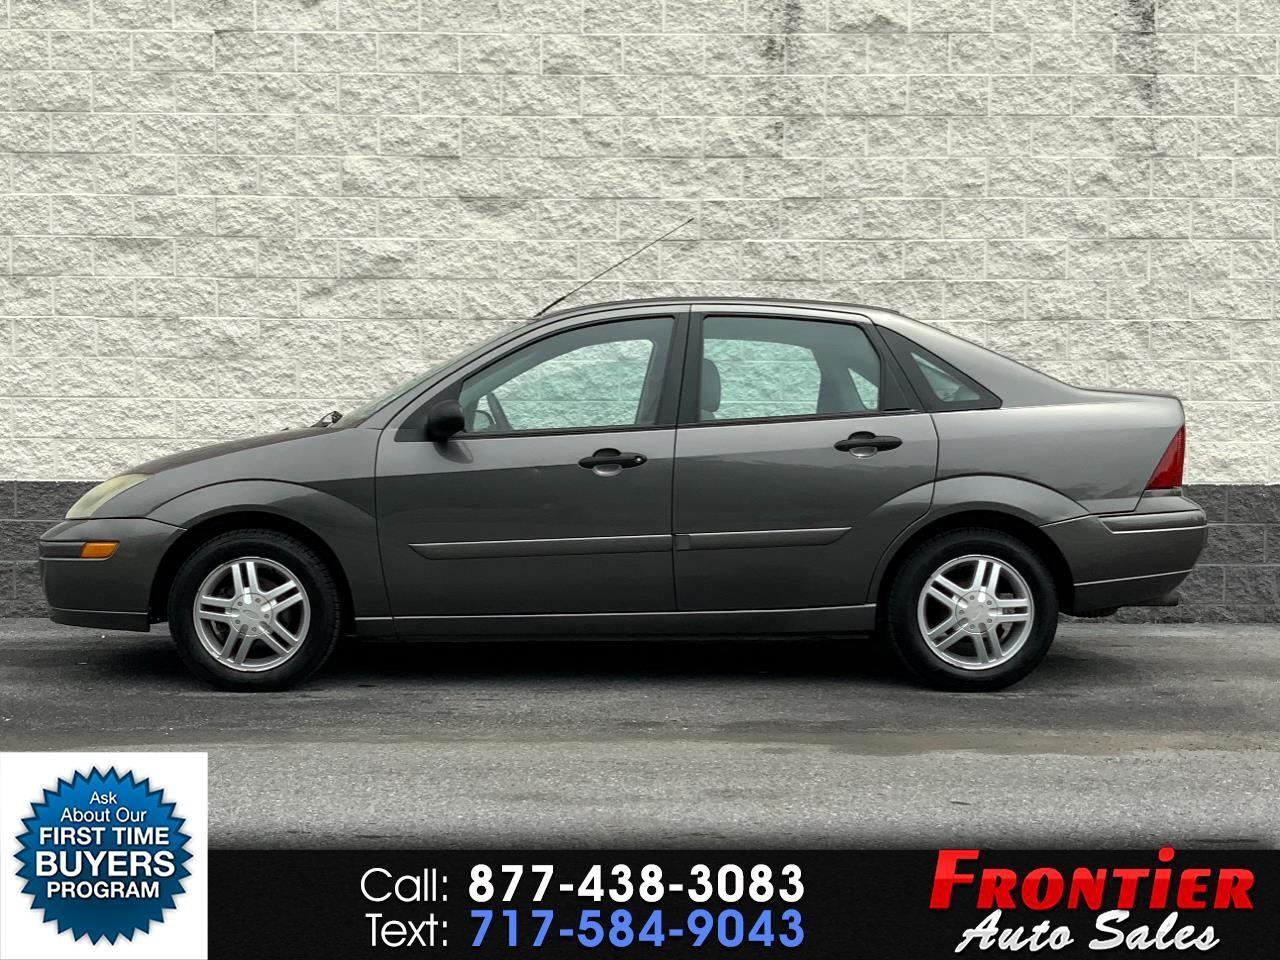 2003 Ford Focus 4dr Sdn LX